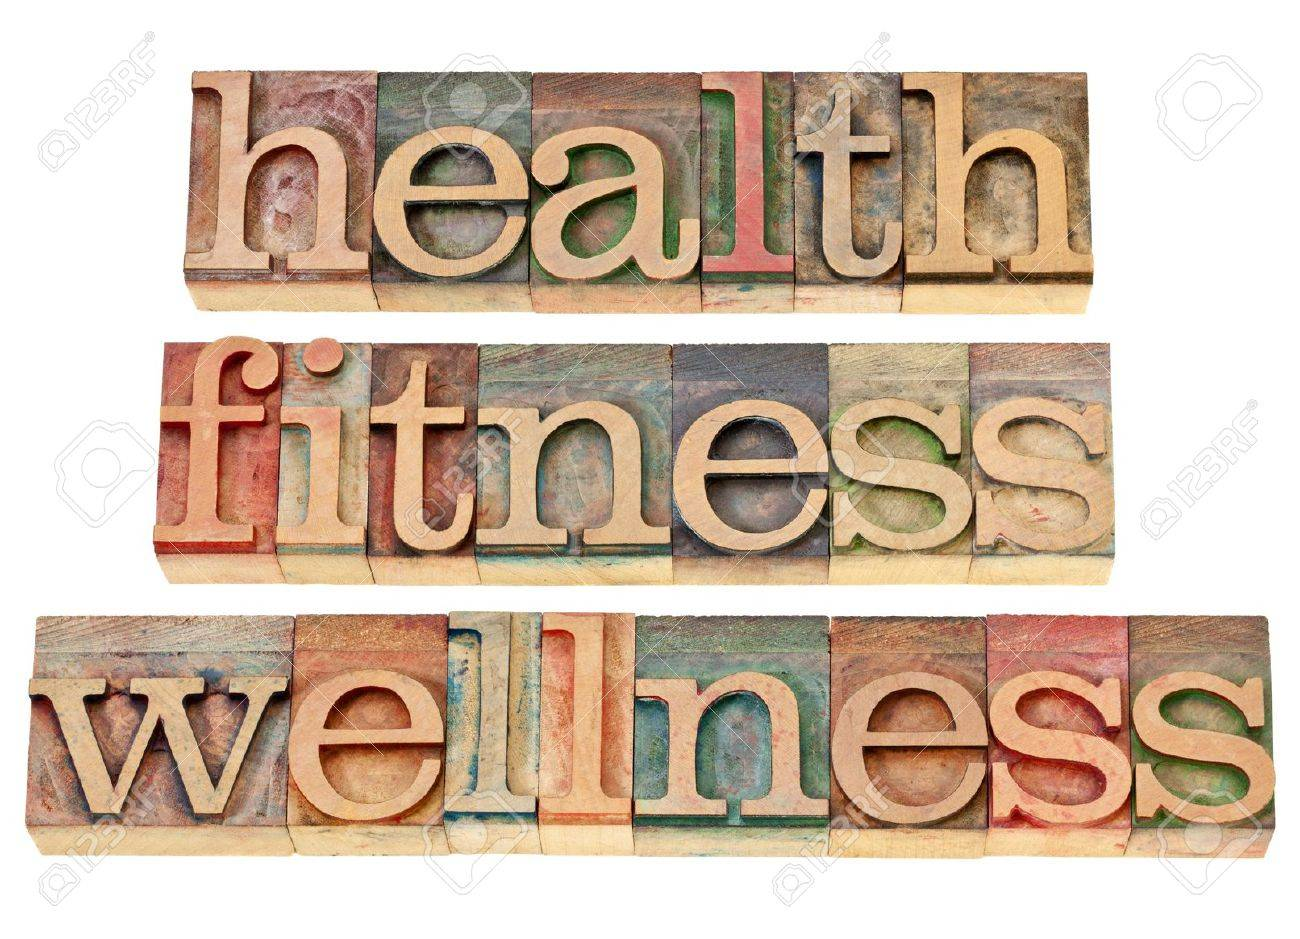 health, fitness, wellness - healthy lifestyle concept - isolated text in vintage letterpress wood type Stock Photo - 13104963